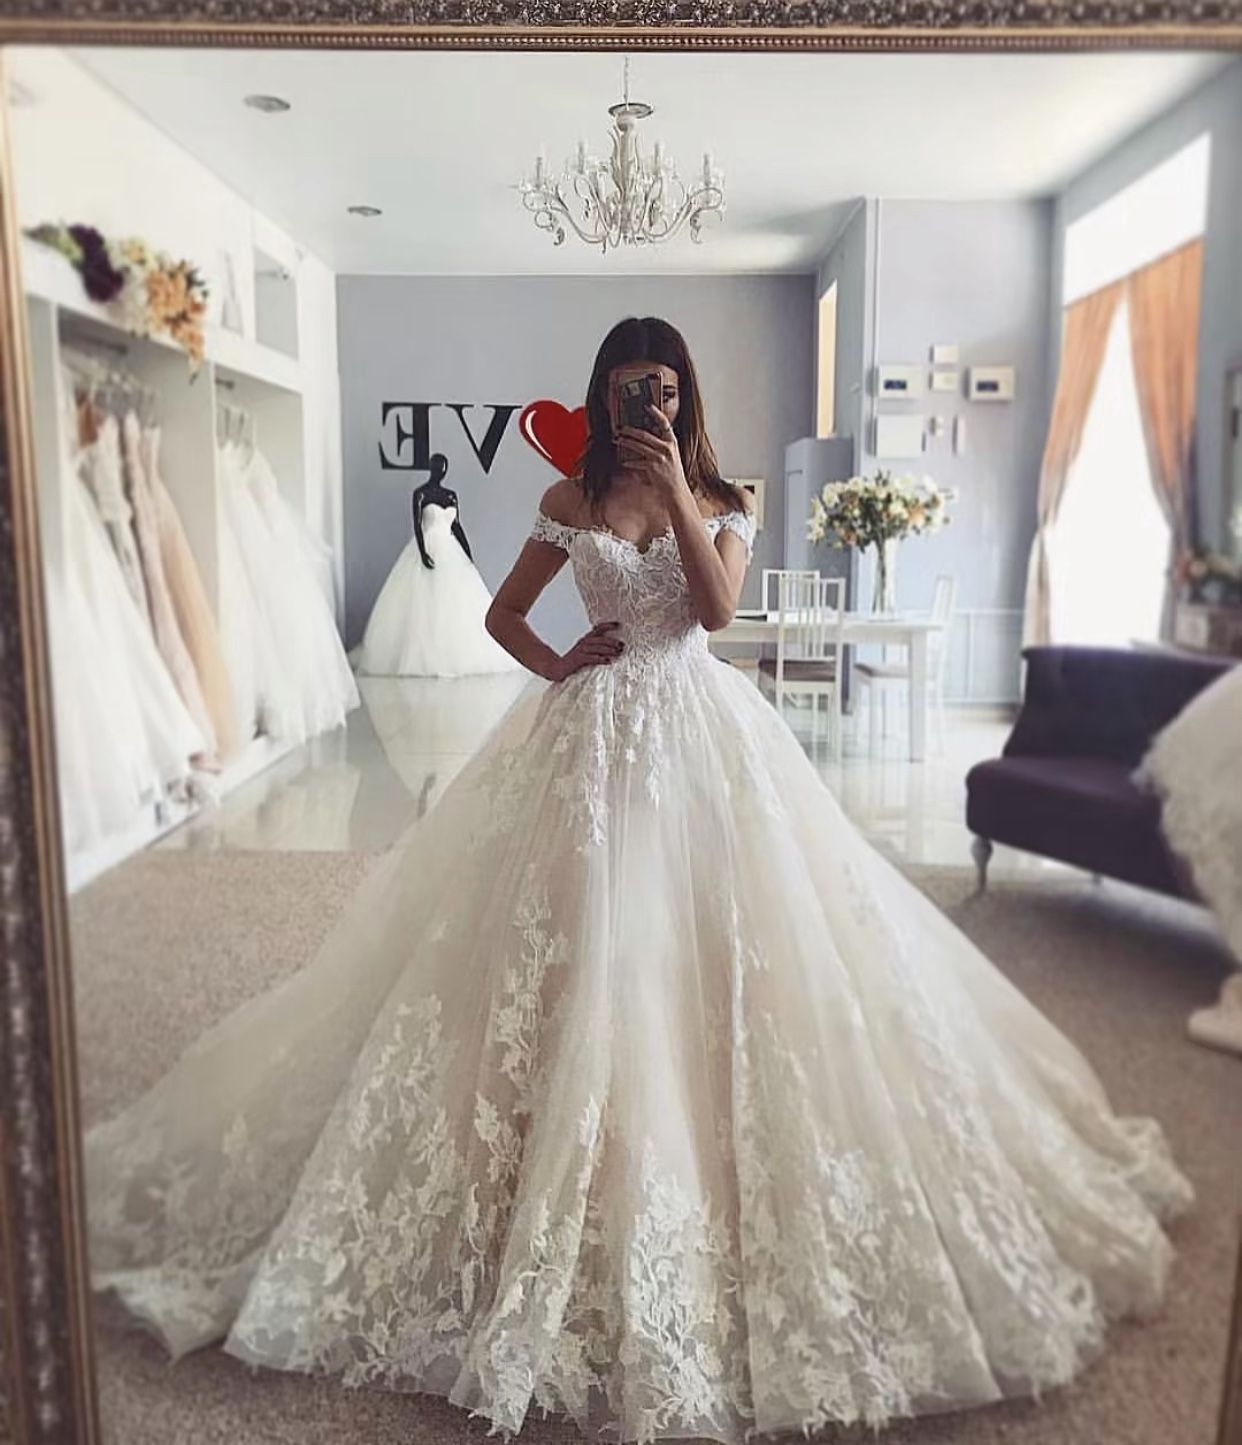 """™ð•šð•Ÿð•¥ð•–𝕣𝕖𝕤𝕥 Н•'𝕪𝕒𝕟𝕟𝕒𝕠𝕟𝕖𝕒𝕝𝟘𝟛 Ball Gowns Wedding Beautiful Wedding Dresses Princess Wedding Dresses"